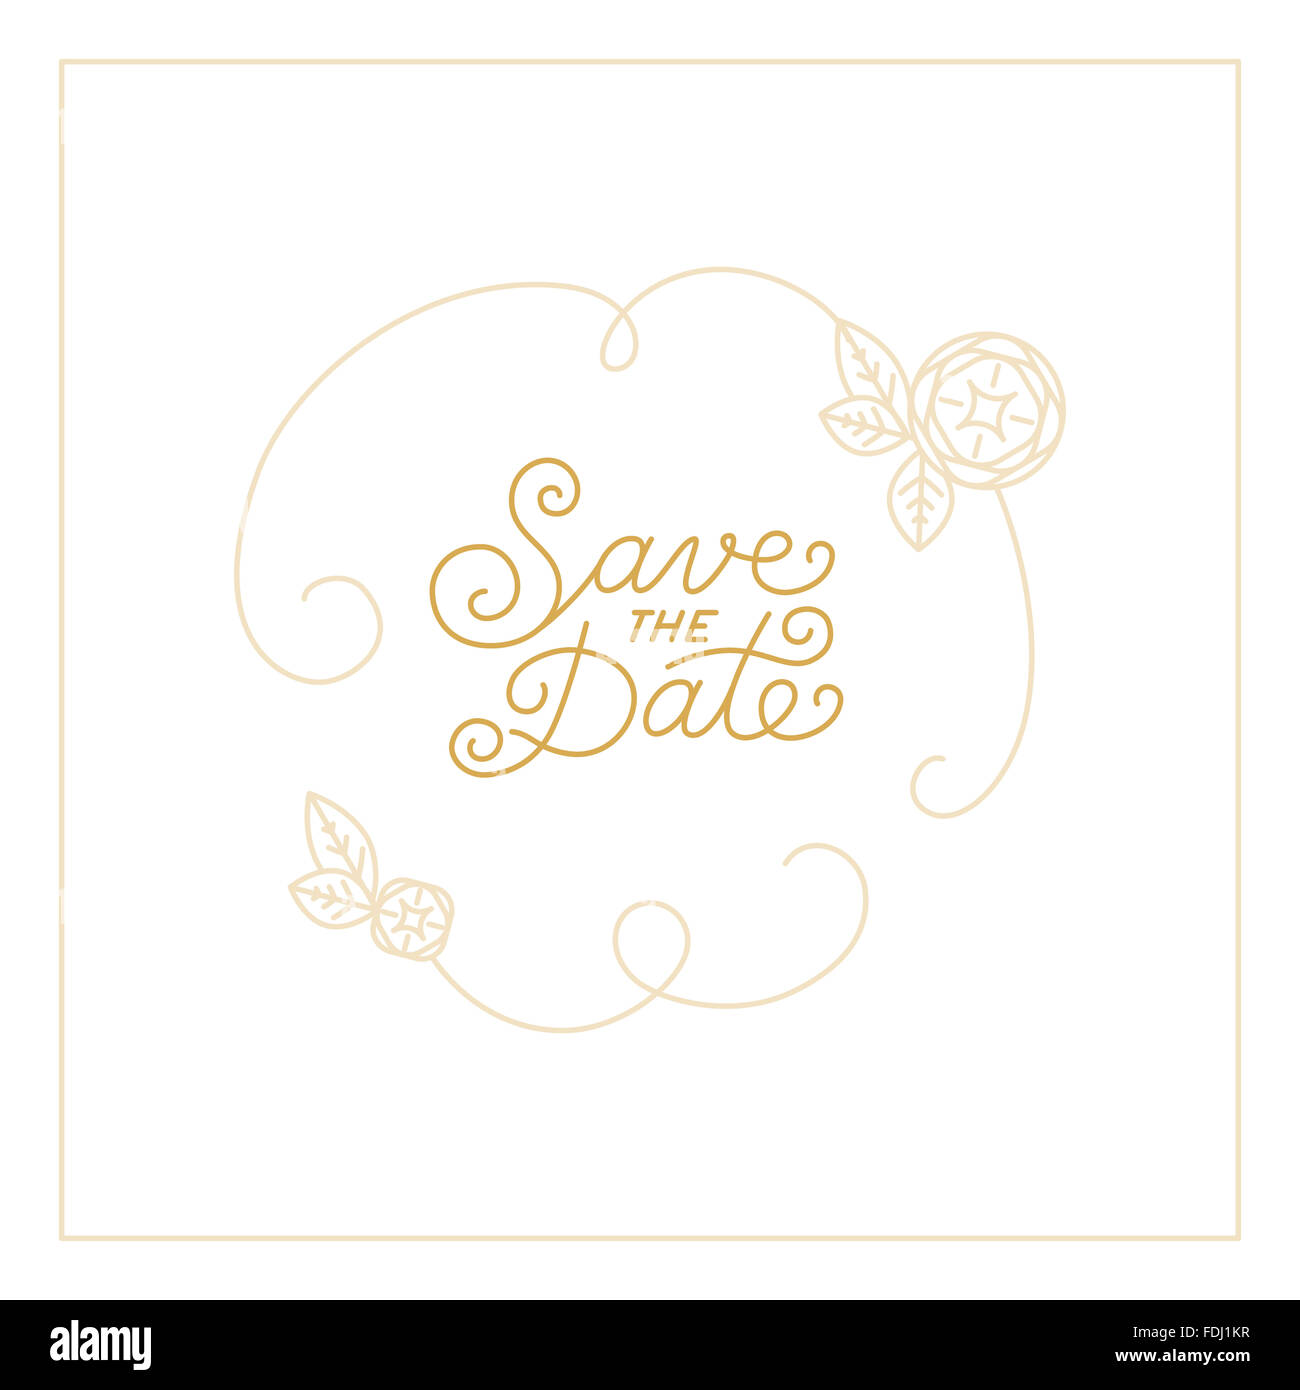 save the date card design template with hand lettering and text